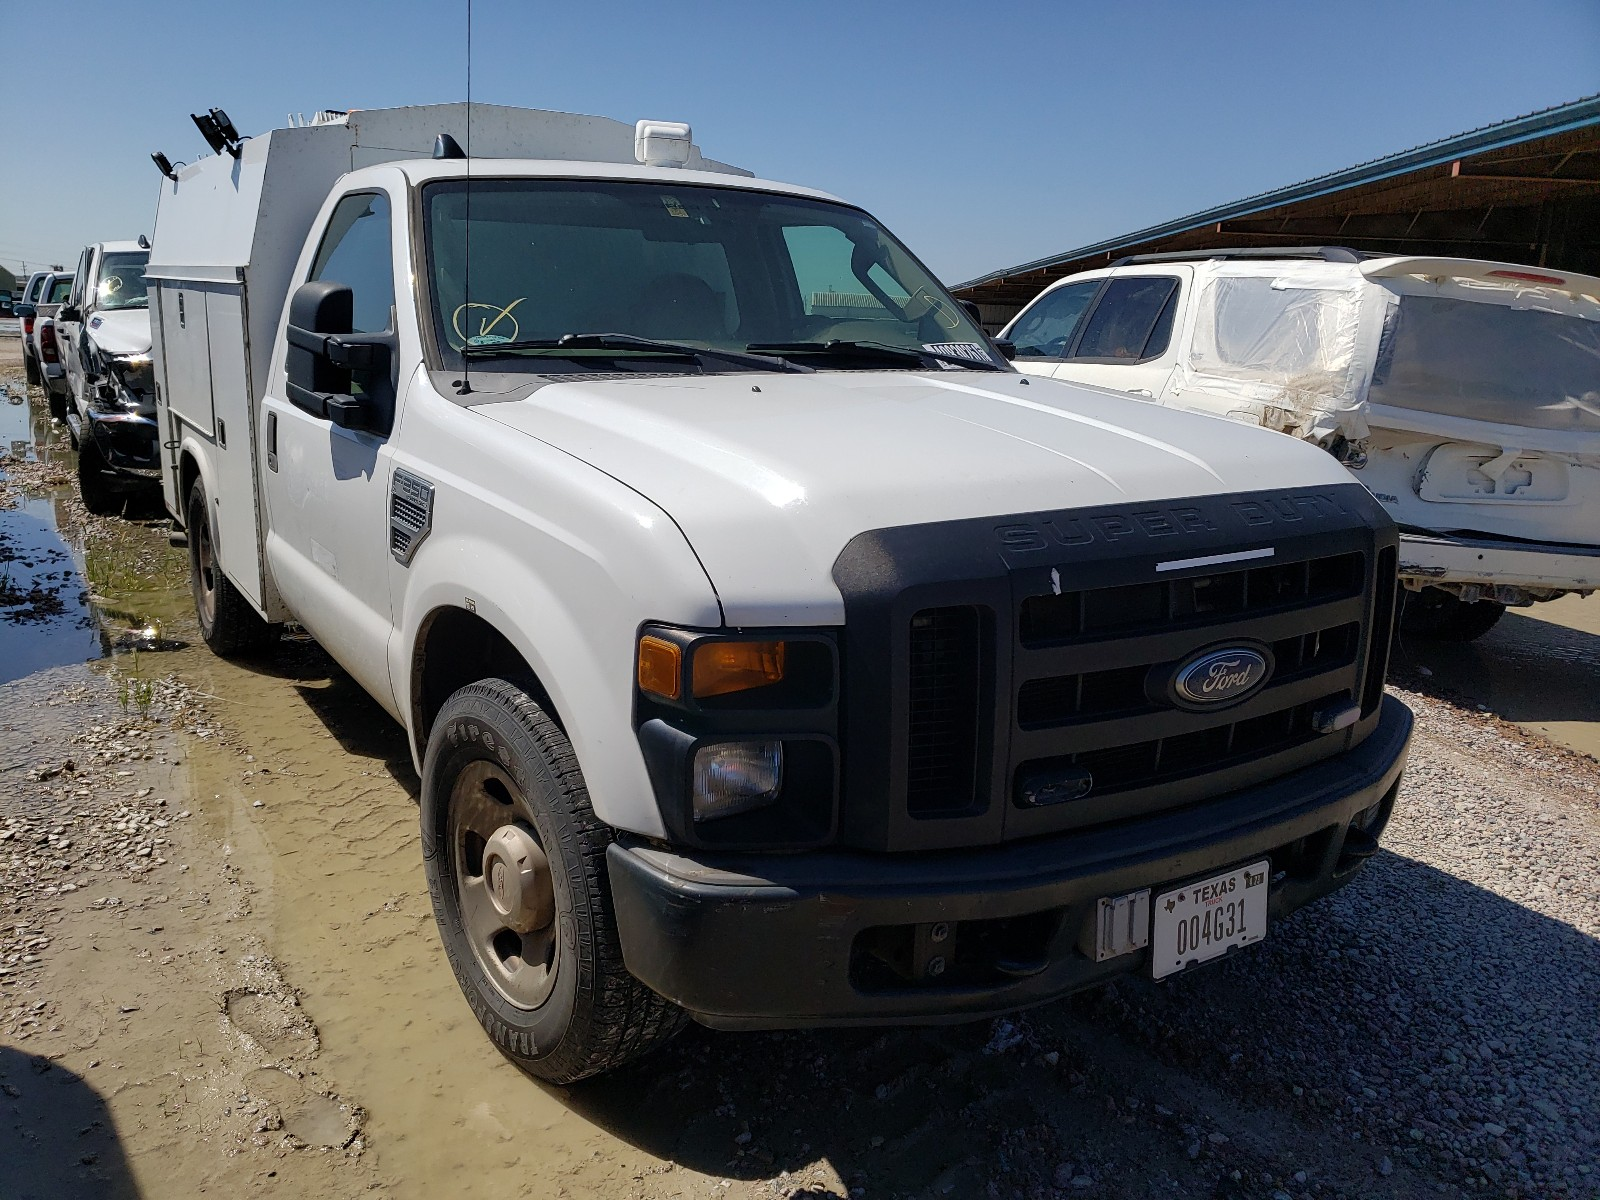 2008 FORD F350 SRW S - 1FDWF30518EE37554